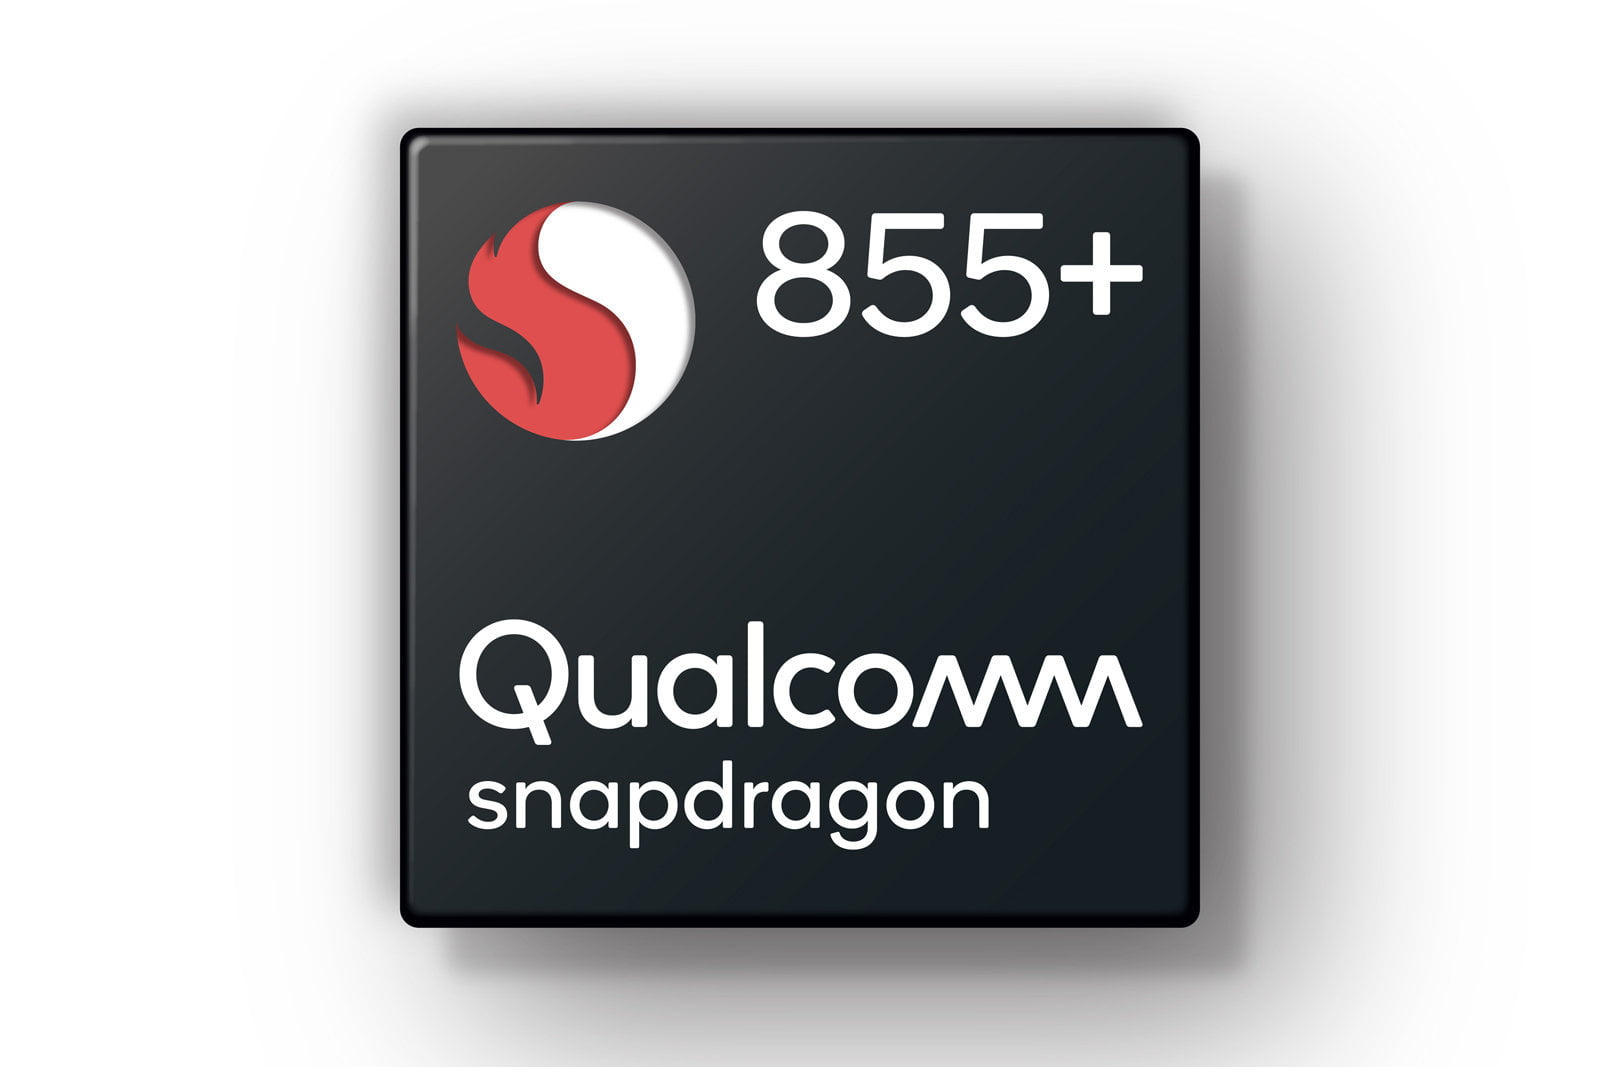 Upcoming Smartphones With Qualcomm Snapdragon 855 Plus